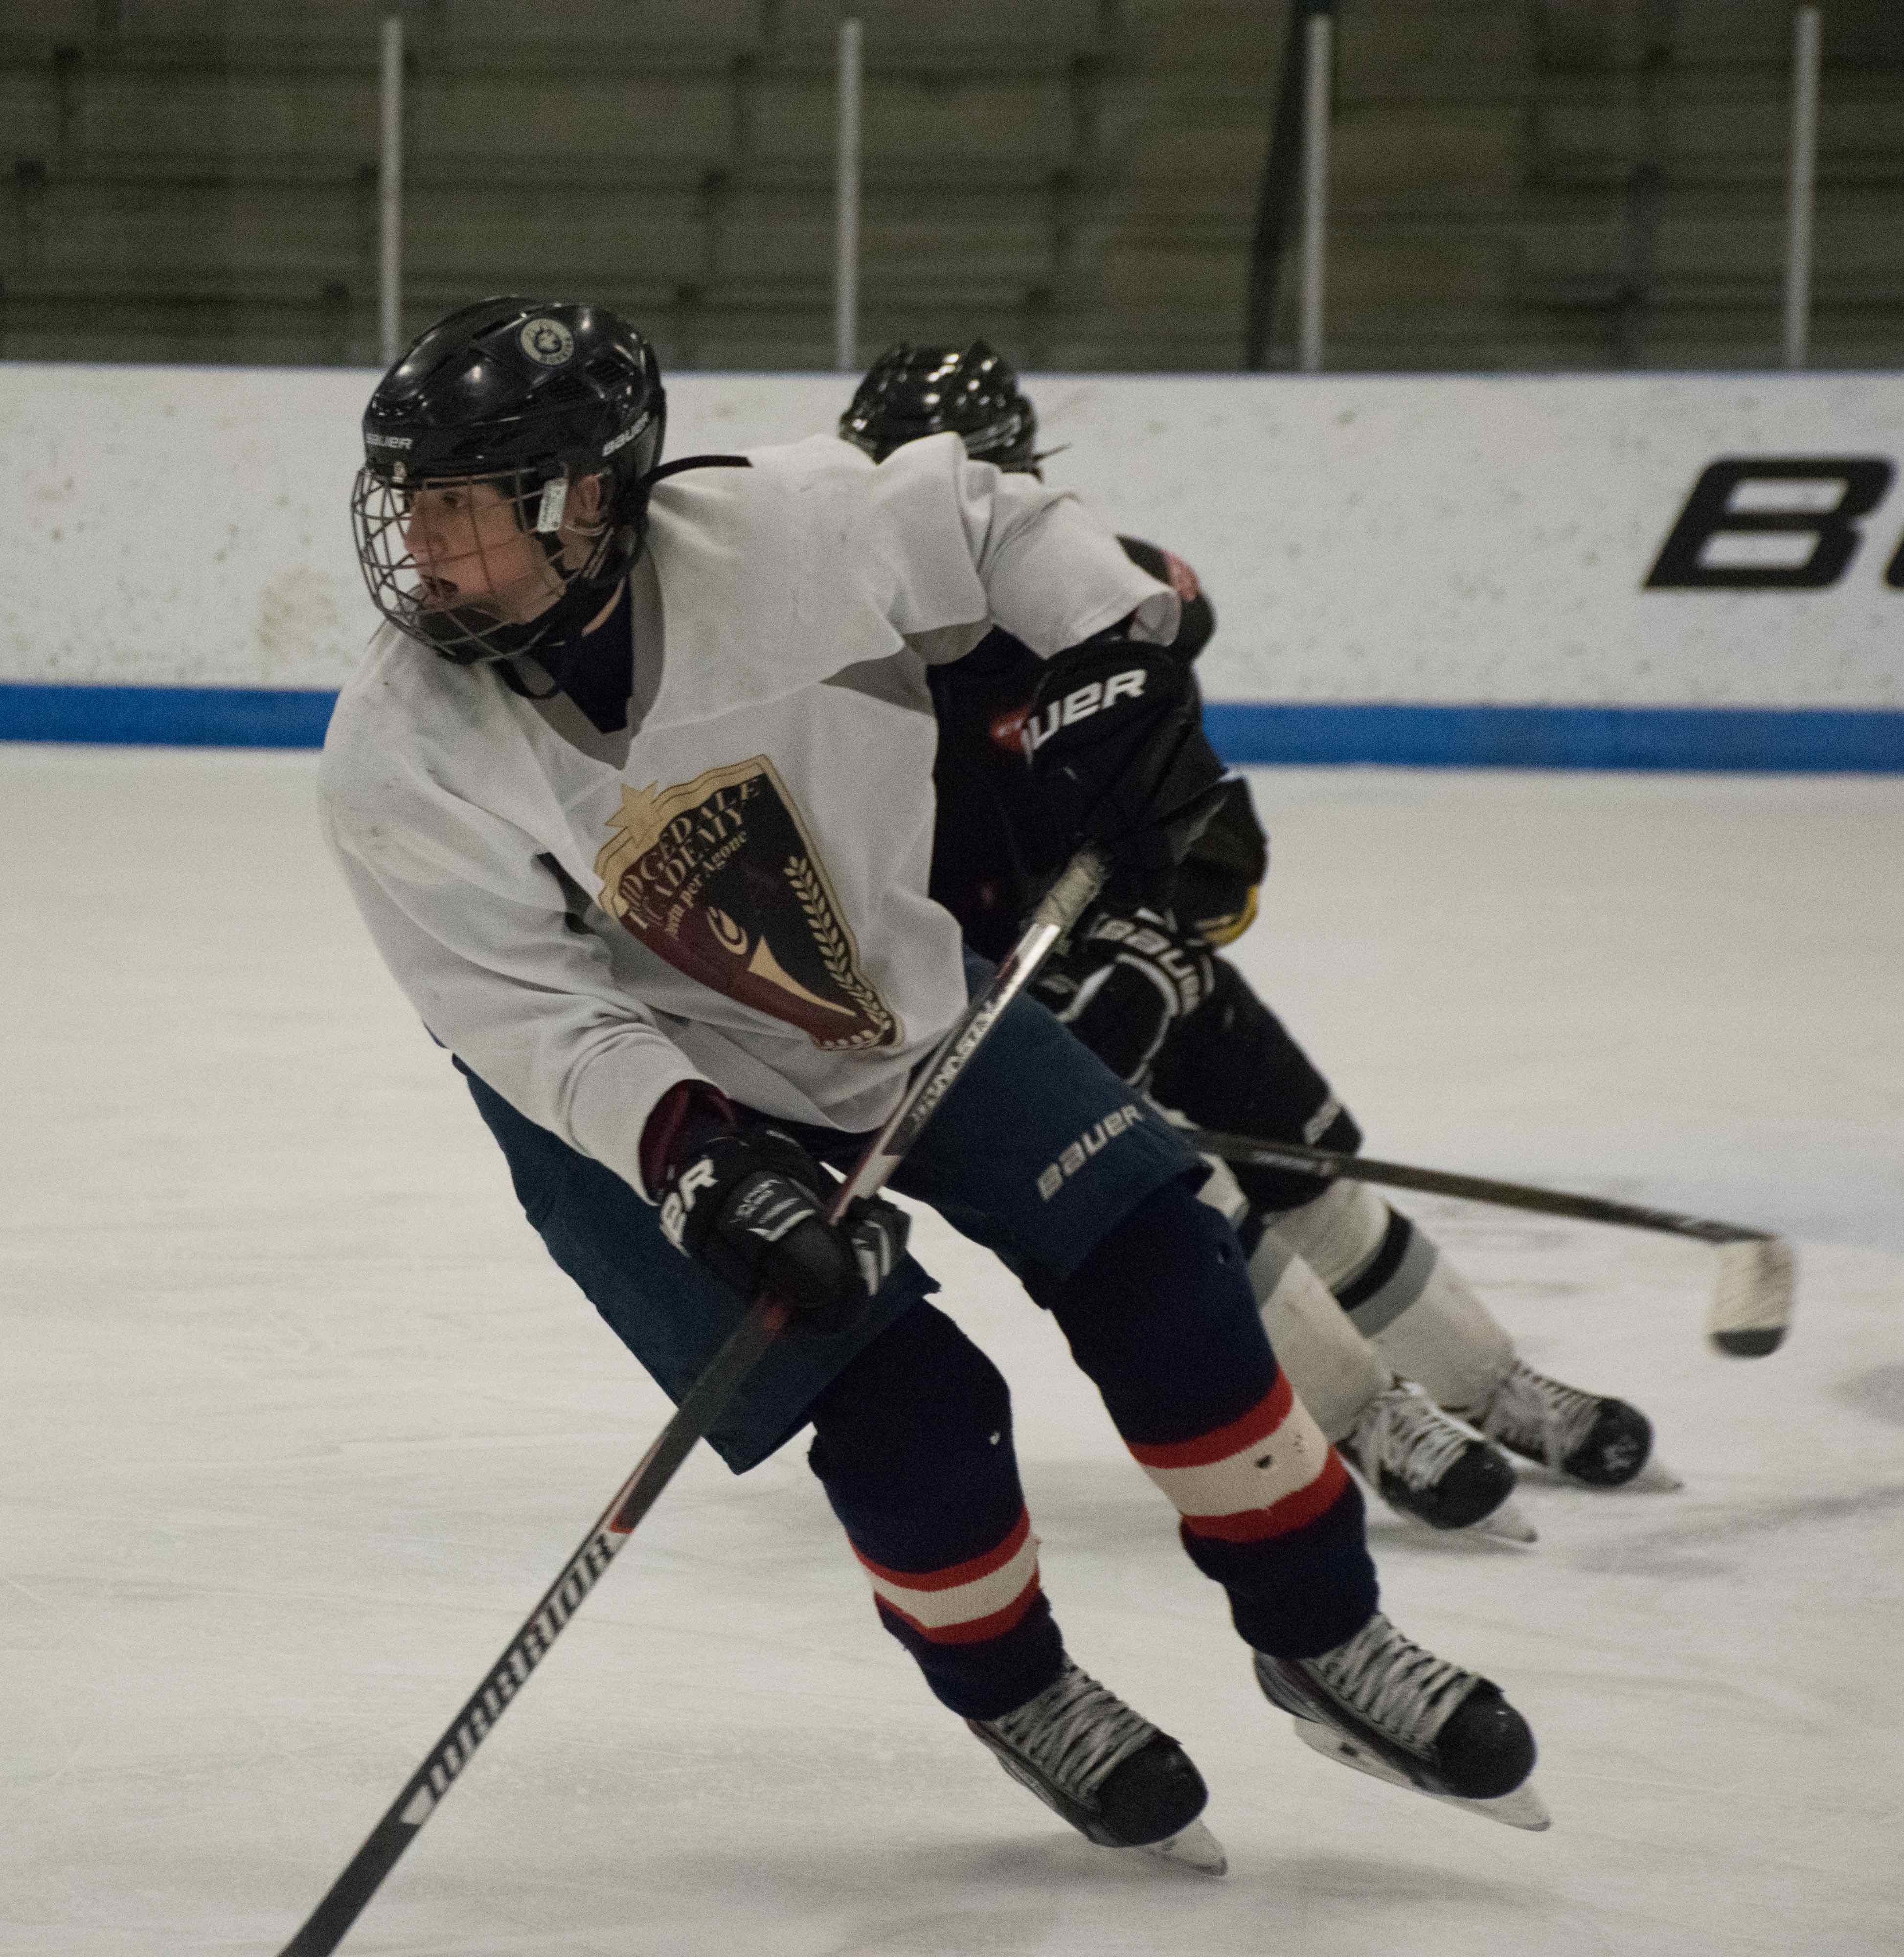 agility training in youth hockey players improves skating posture